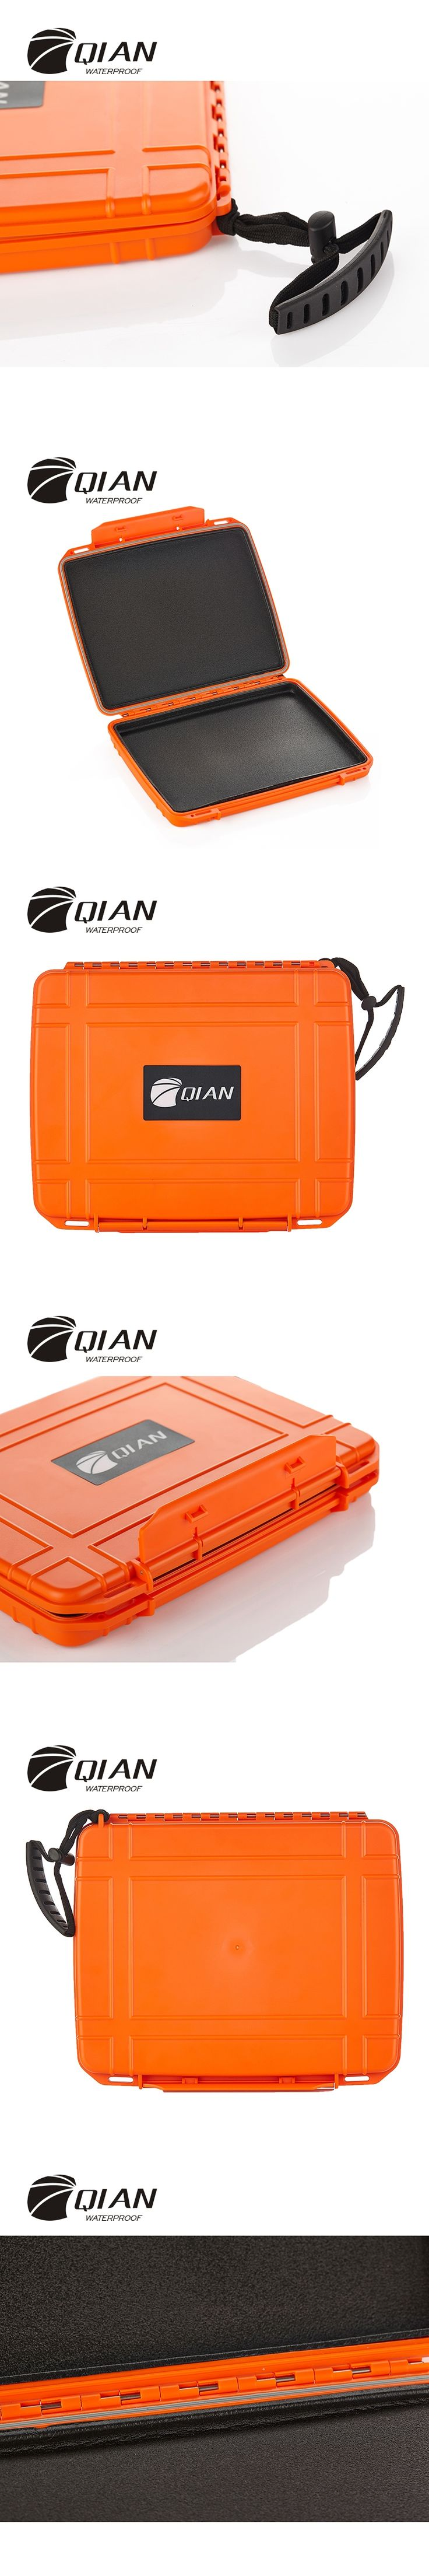 QIAN SAFETY Professional Waterproof Safety Equipment Box Impact Plastic Sealed Tool Anti-collision Swimming Diving Case